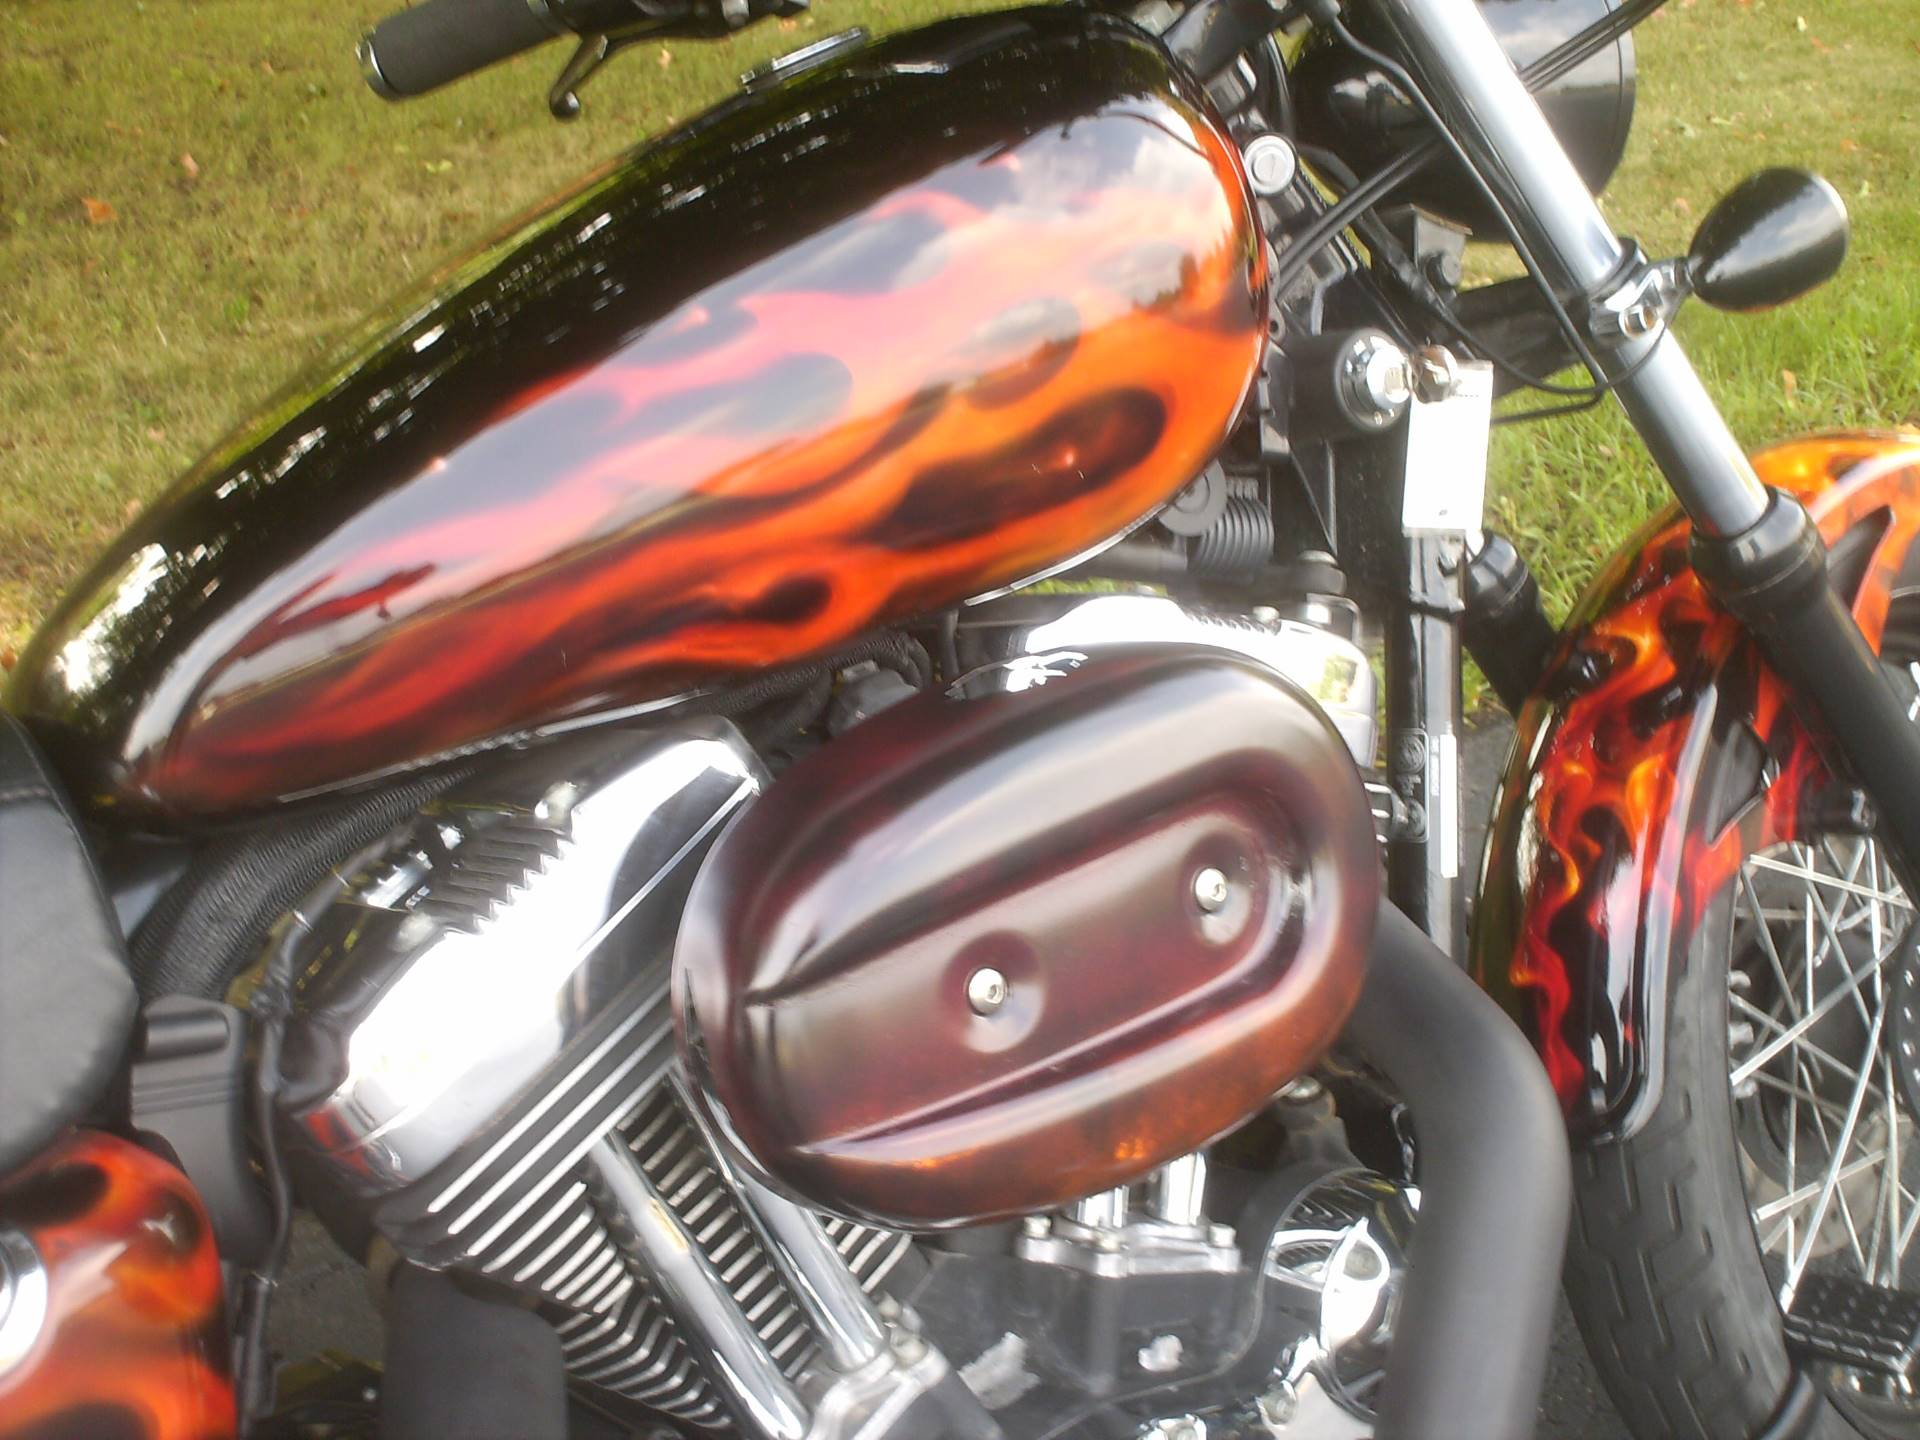 2007 Harley-Davidson Sportster 1200 1 Of A Kind in Mukwonago, Wisconsin - Photo 4